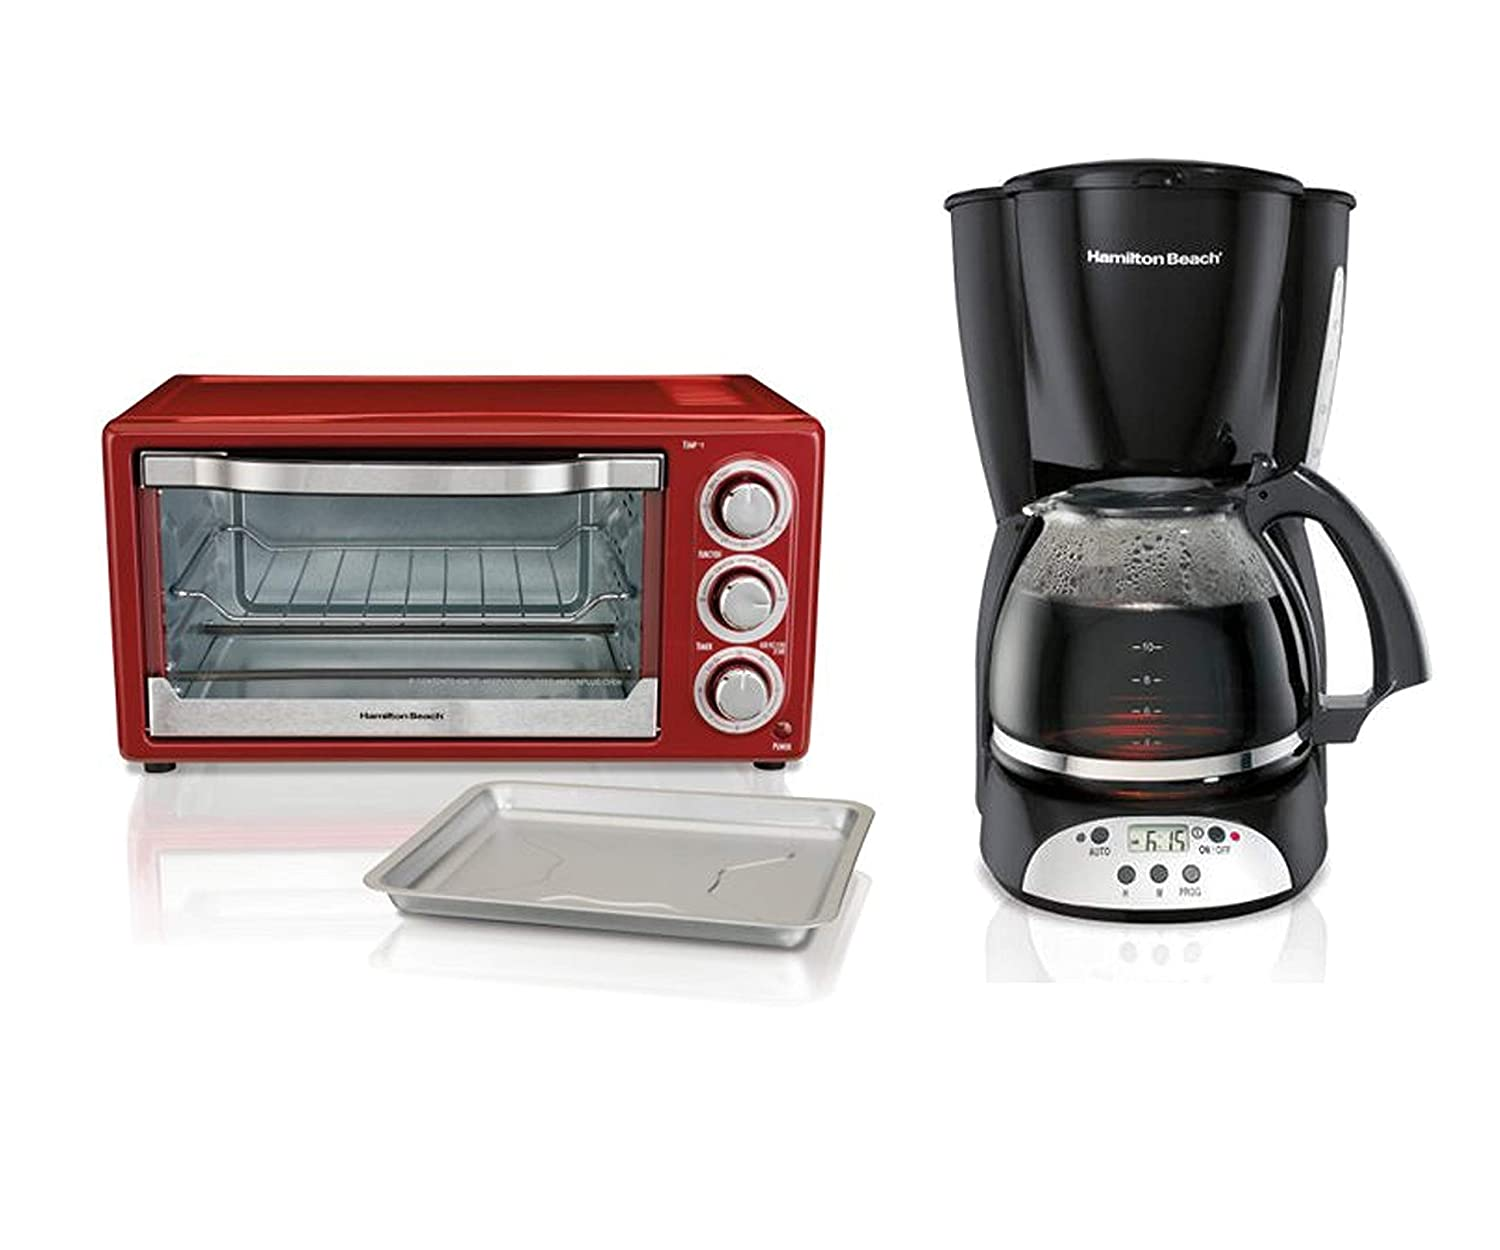 Hamilton Beach 6 Slice Toaster Convection or Broiler Oven, Red bundle with Hamilton Beach 12 Cup Programmable Coffee Maker